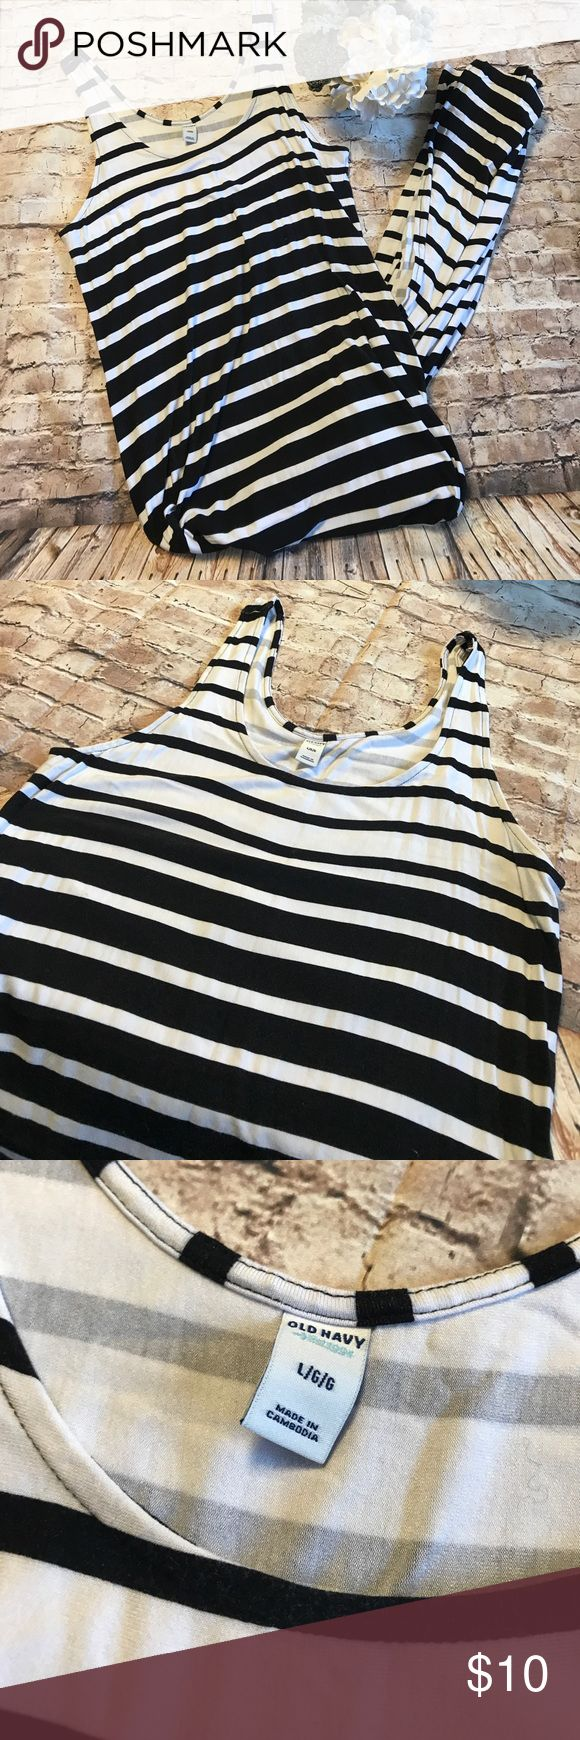 Old Navy Maxi Dress Old Navy Maxi Dress. Used. 🚫No trades. 🚫No Modeling. 🚭 Smoke-free home. 📐 Available upon request. ✅All reasonable offers accepted. 💕Thank you for viewing my item. Old Navy Dresses Maxi